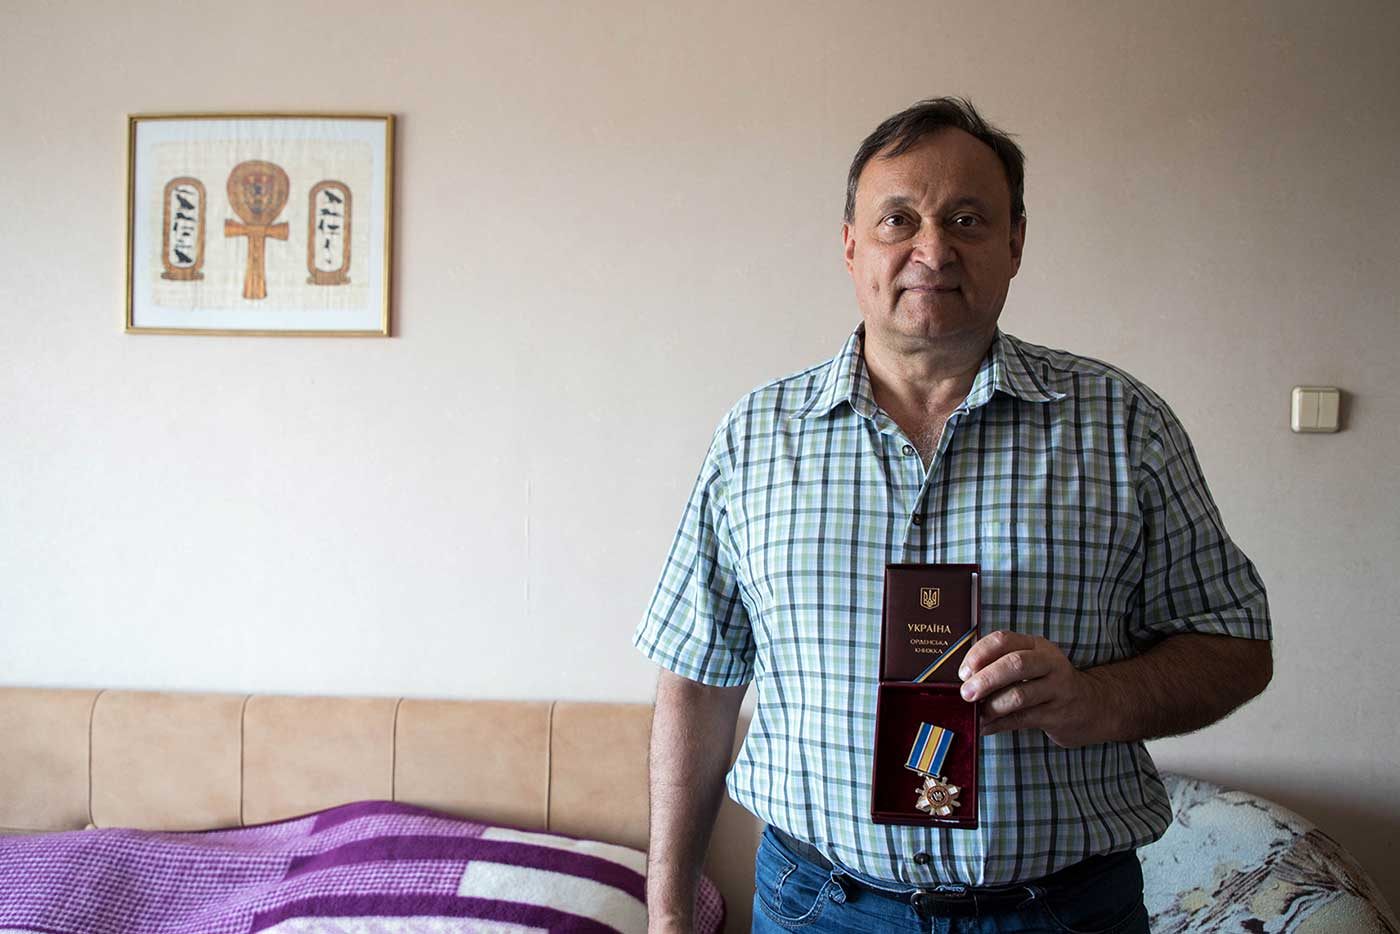 Alexei Ananenko at home in September 2019, holding the Order of Courage medal awarded to him the previous year by President Petro Poroshenko.